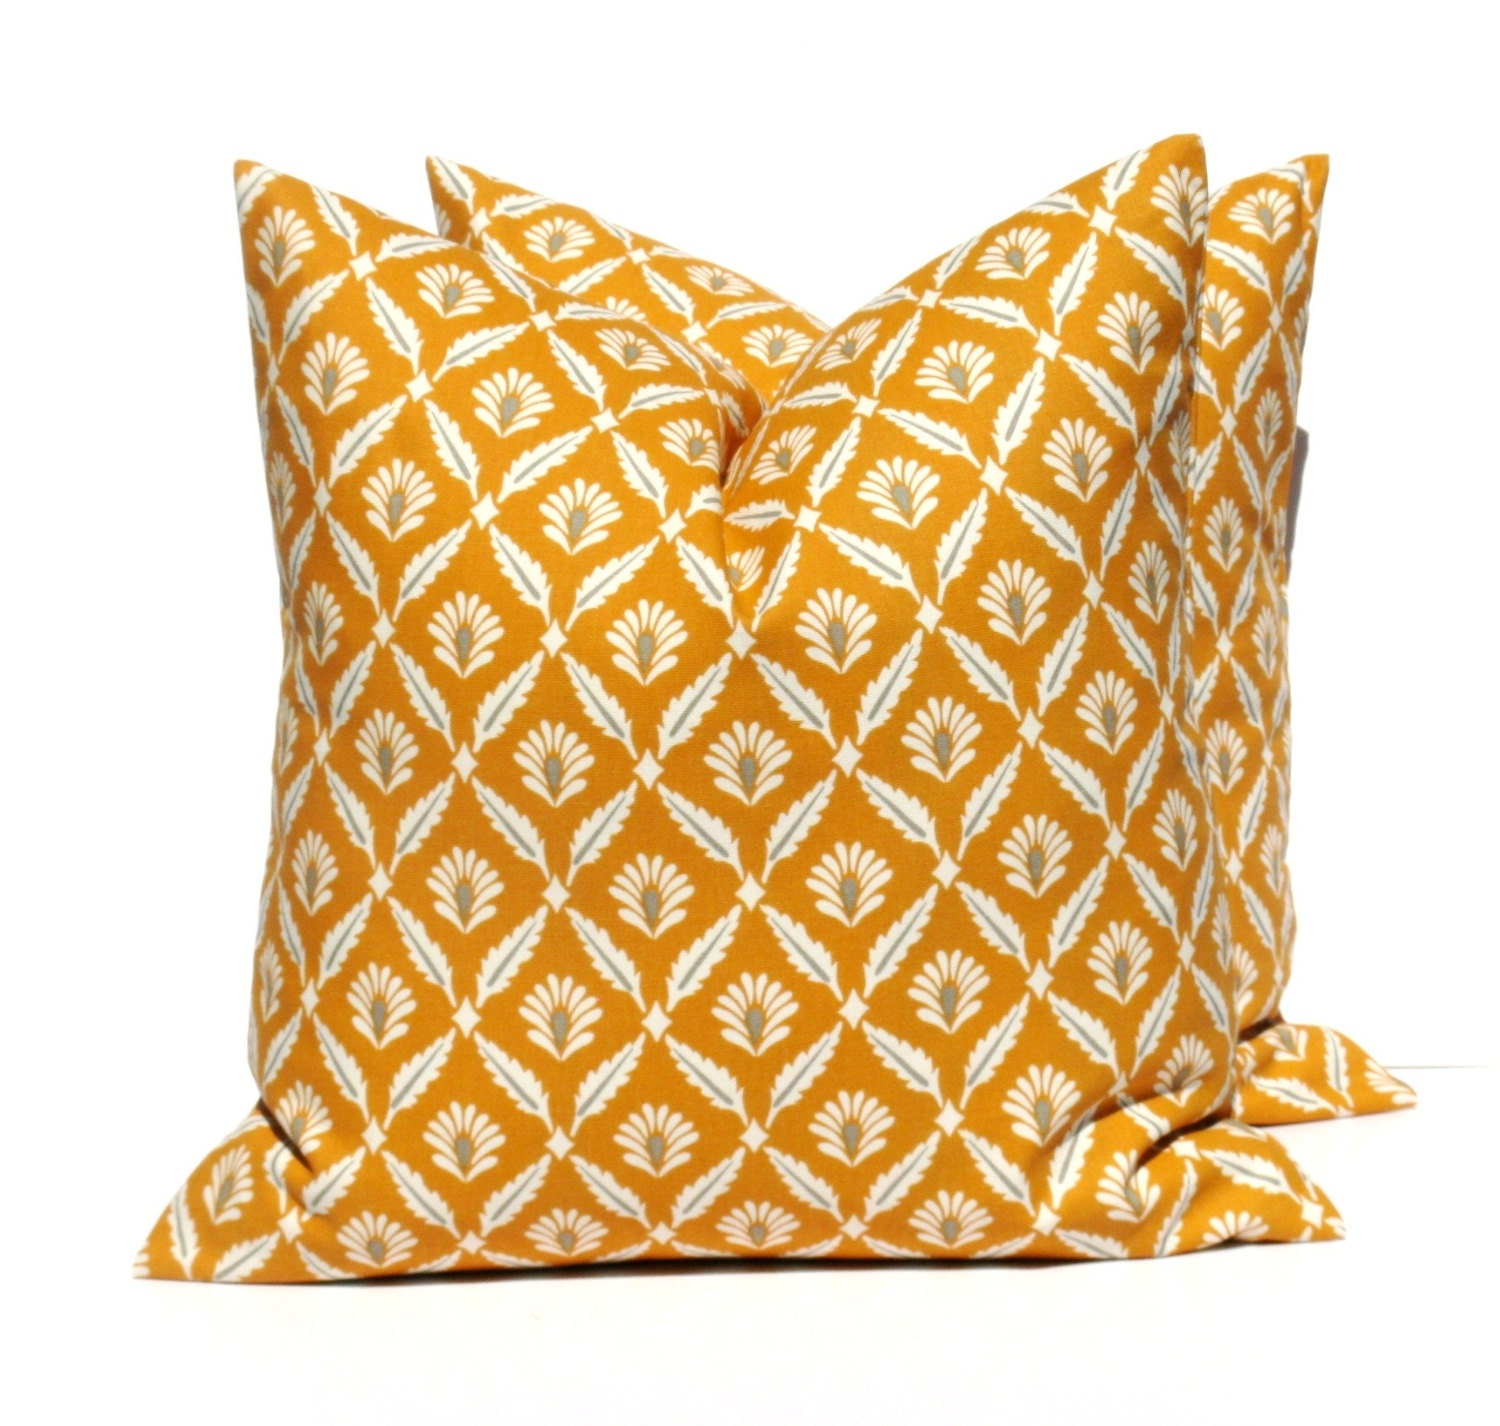 20x20 Throw Pillows Covers : 20x20 Throw Pillow Covers Orange Pillow Orange by EastAndNest